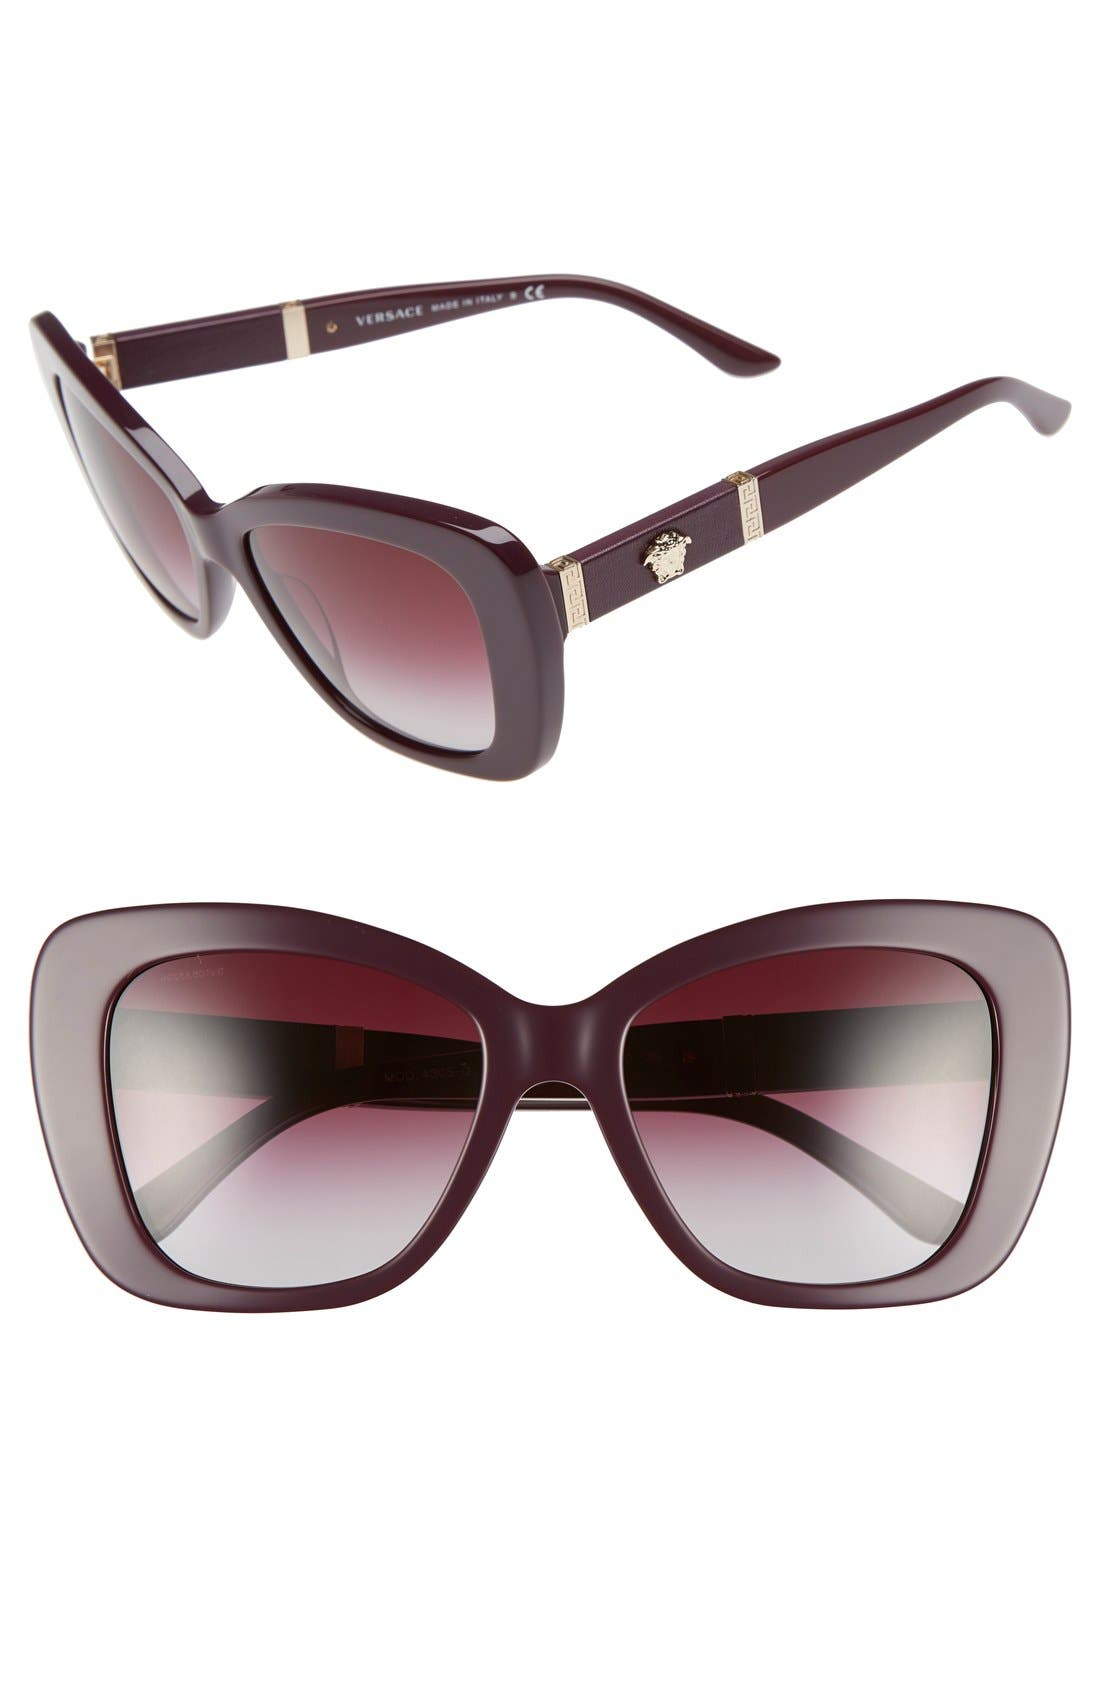 Alternate Image 1 Selected - Versace 54mm Retro Sunglasses